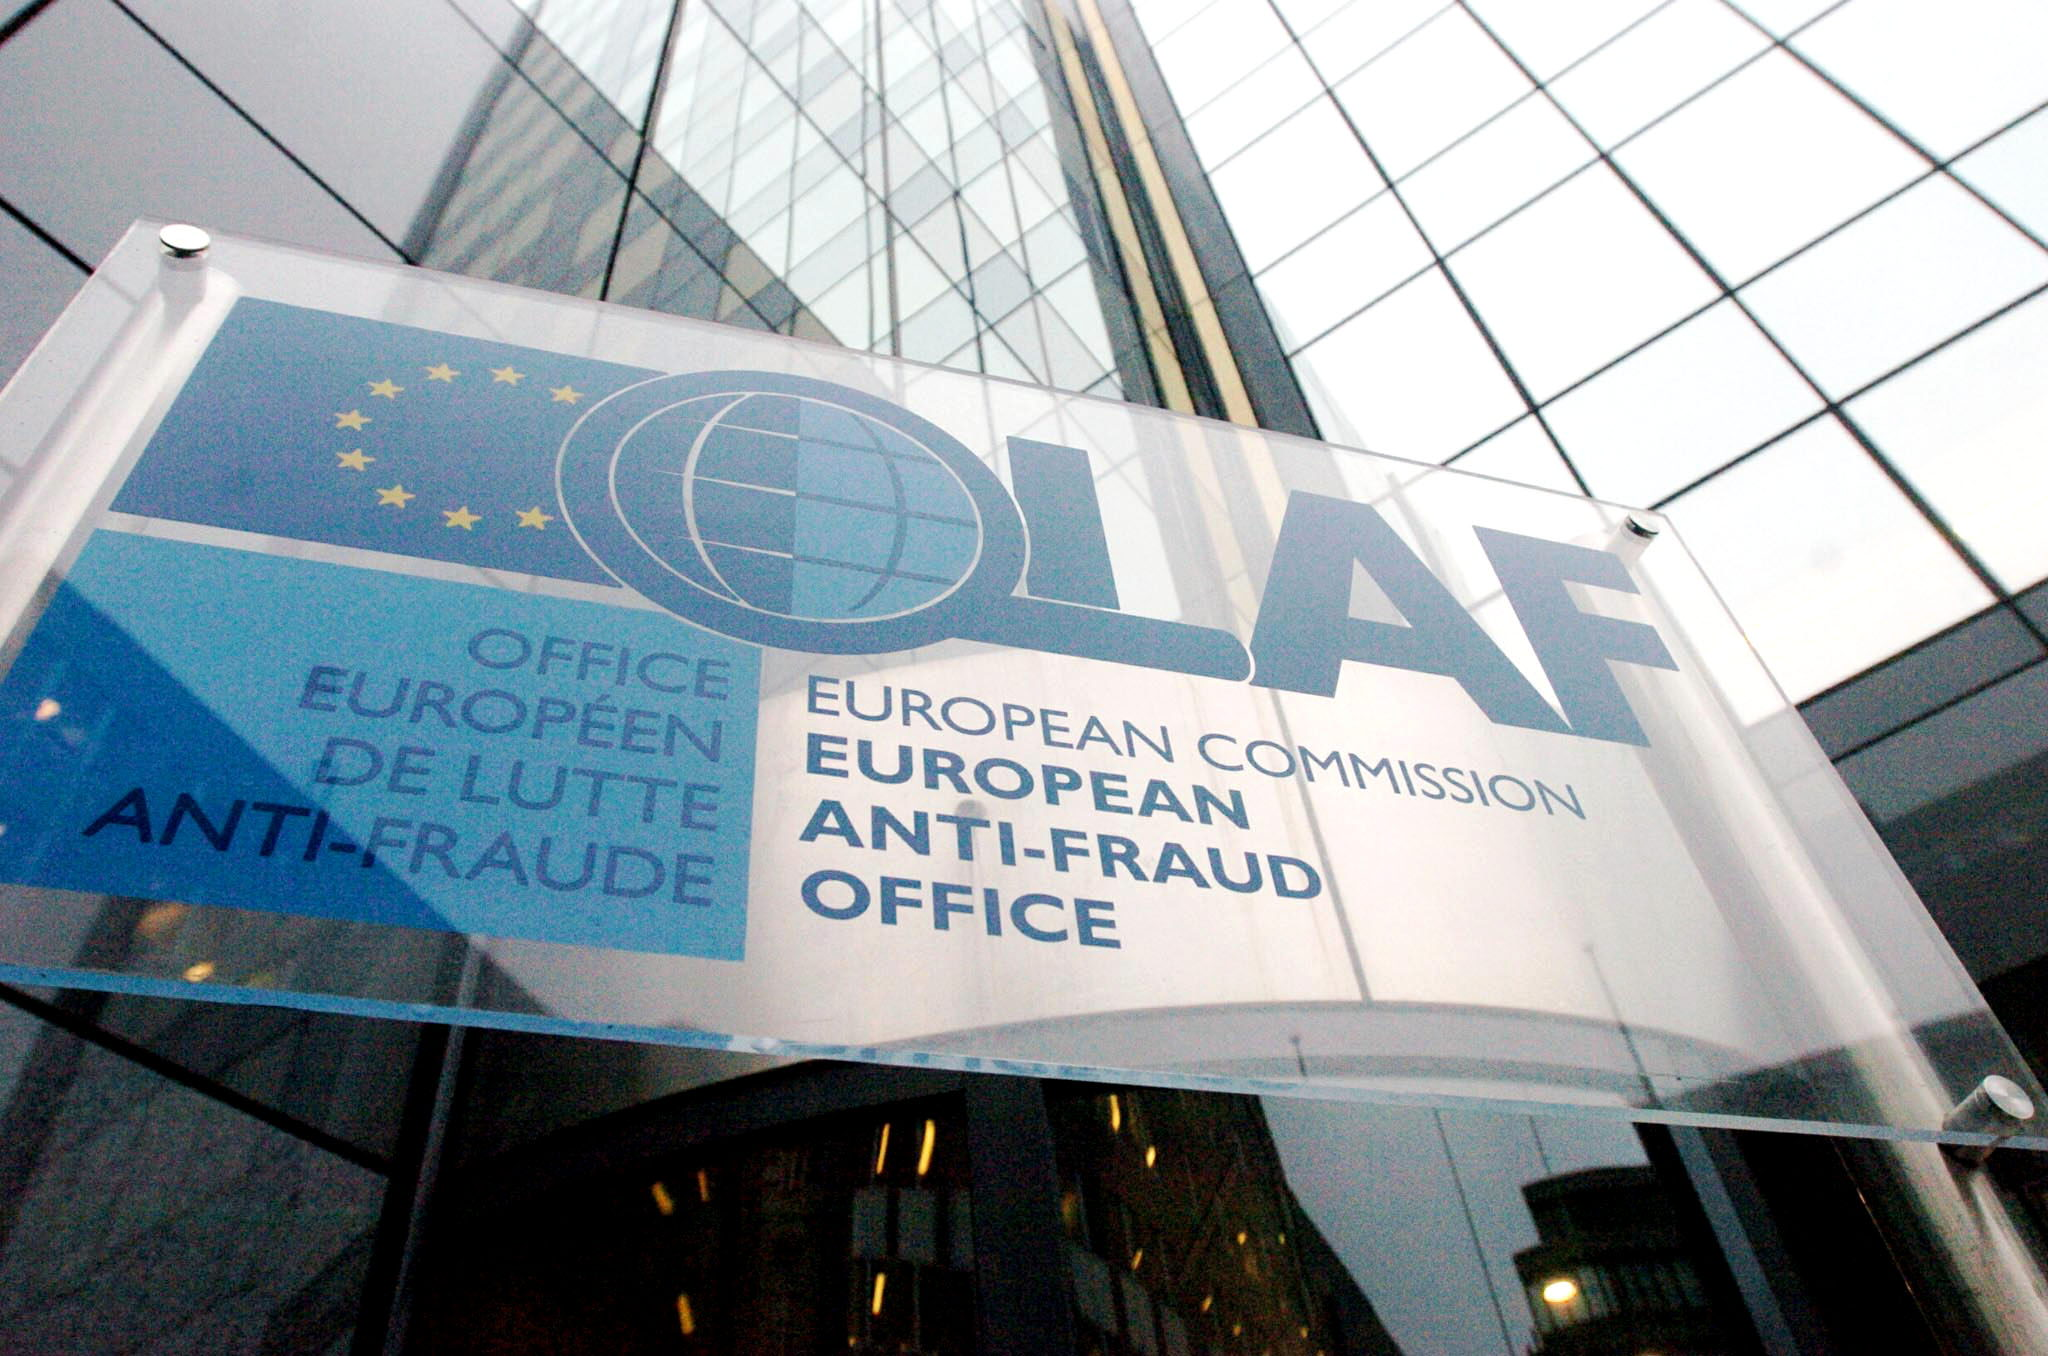 European-Anti-Fraud-Office